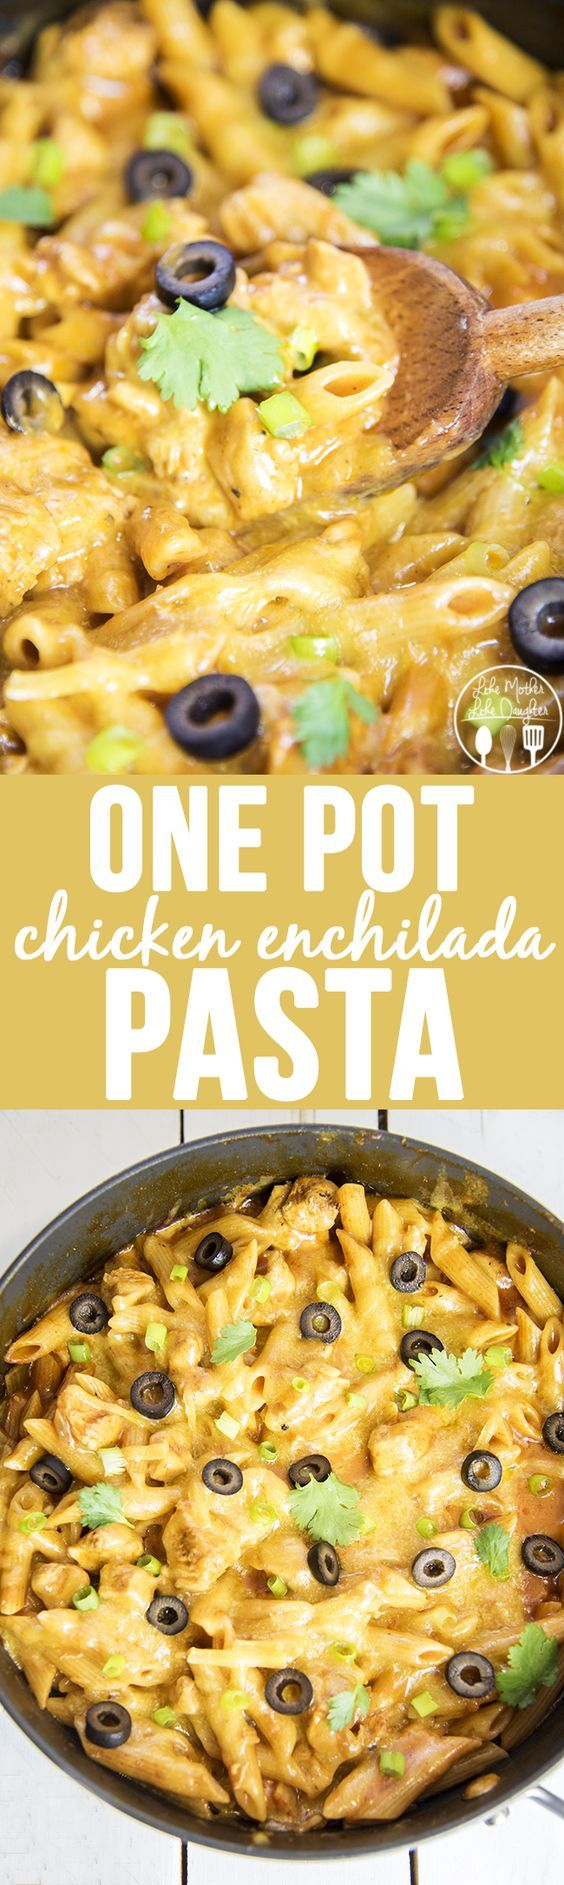 One Pot Chicken Enchilada Pasta Recipe - only 25 minutes to make! | Like Mother, Like Daughter